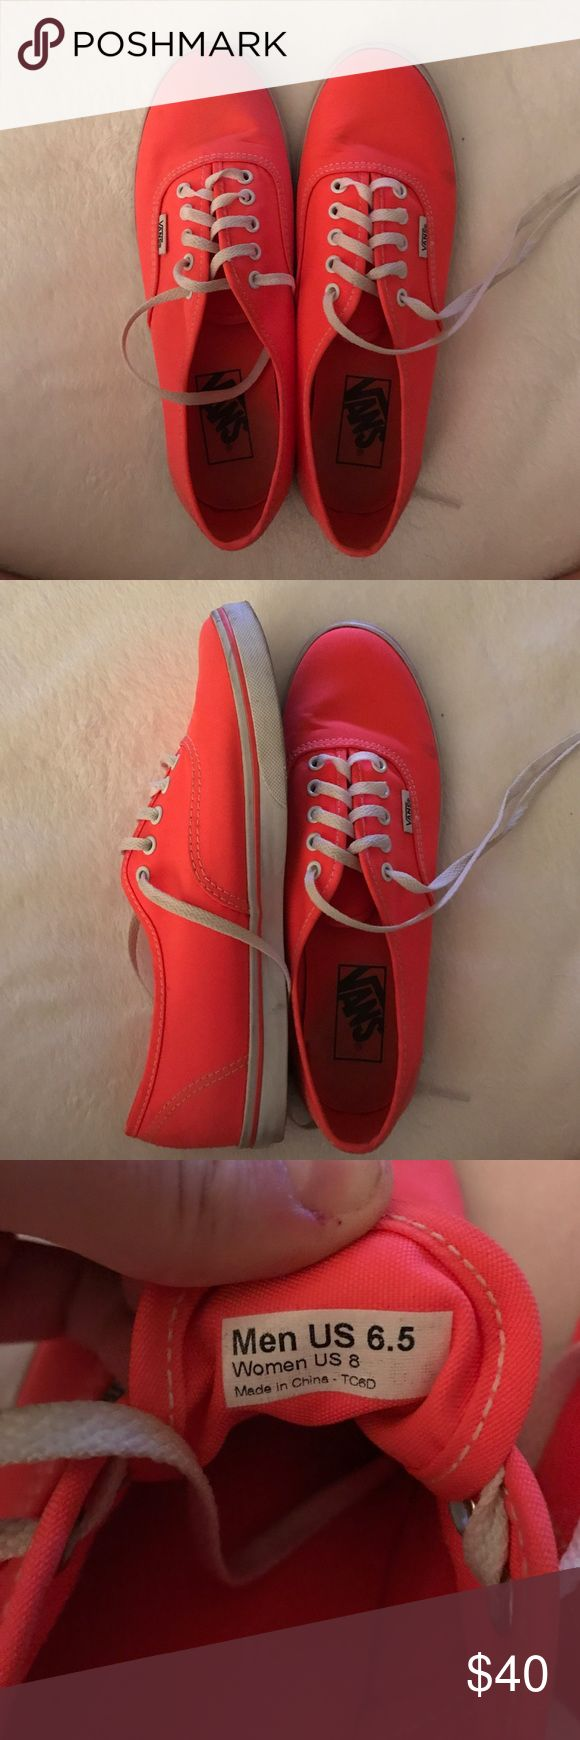 Women's Hot Pink/Coral Vans Like new. Worn 1 time, just aren't my style. Vans Shoes Sneakers